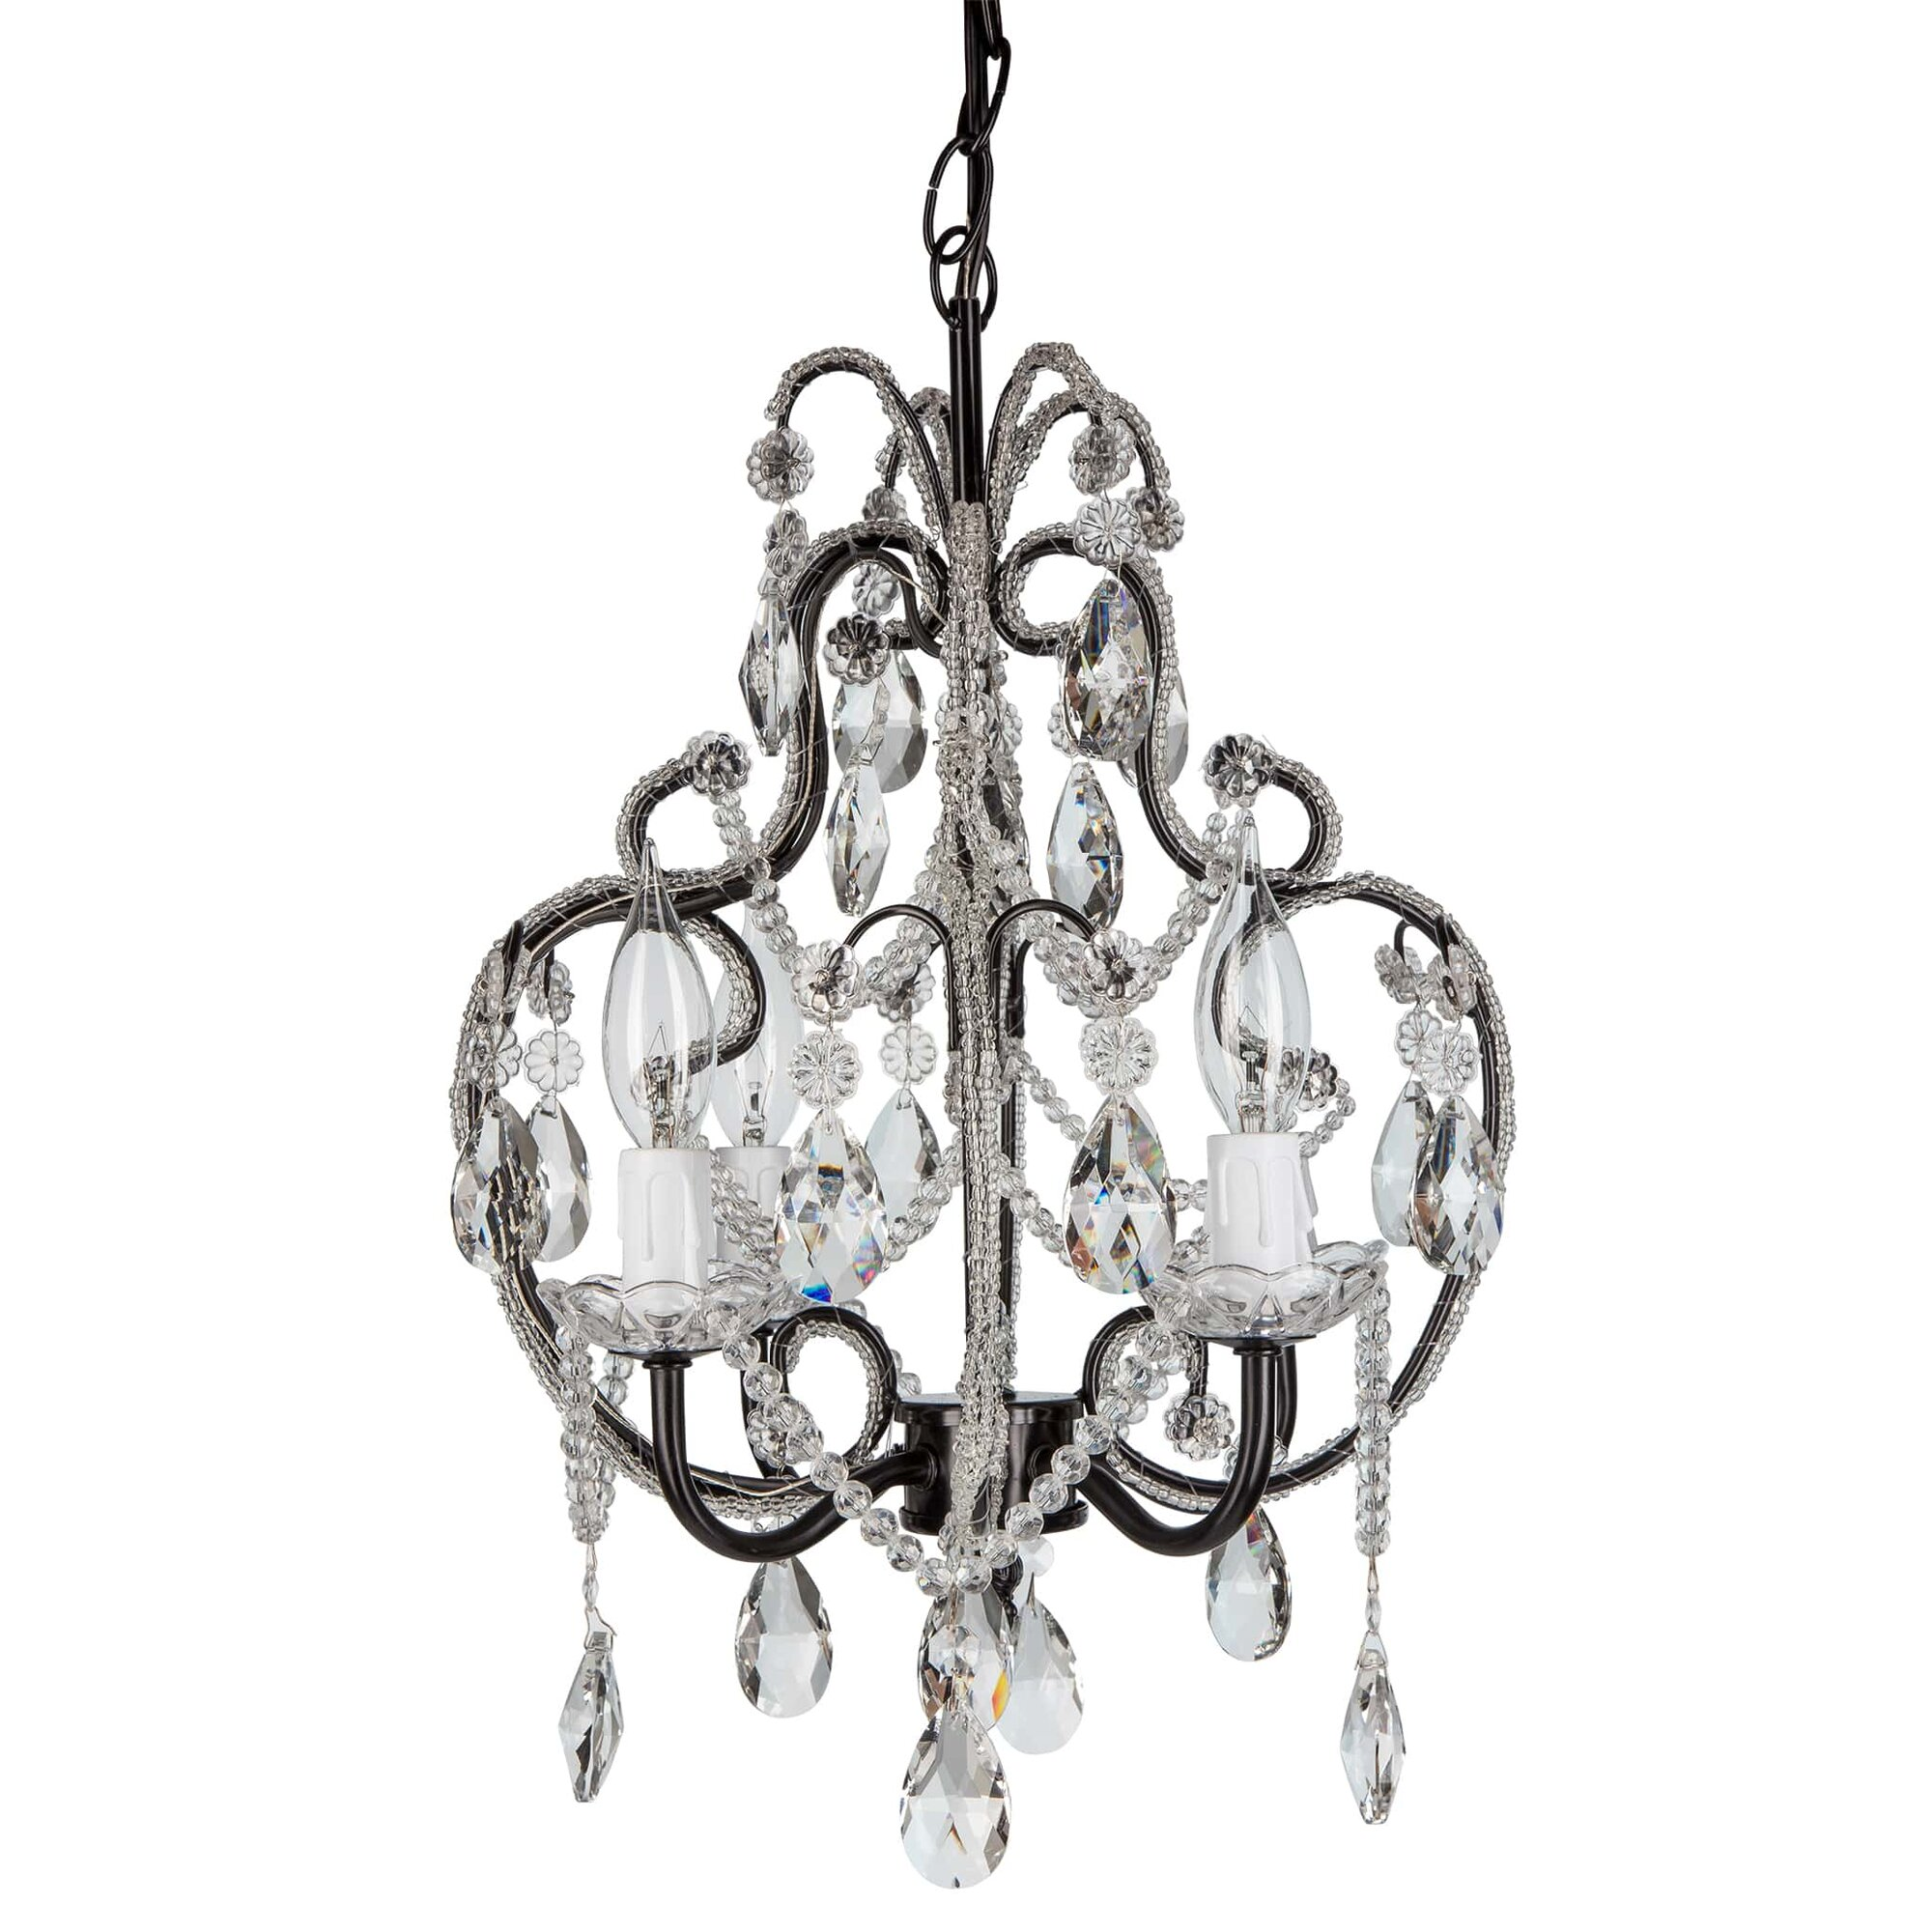 Small Chandeliers For Bathroom. Image Result For Small Chandeliers For Bathroom